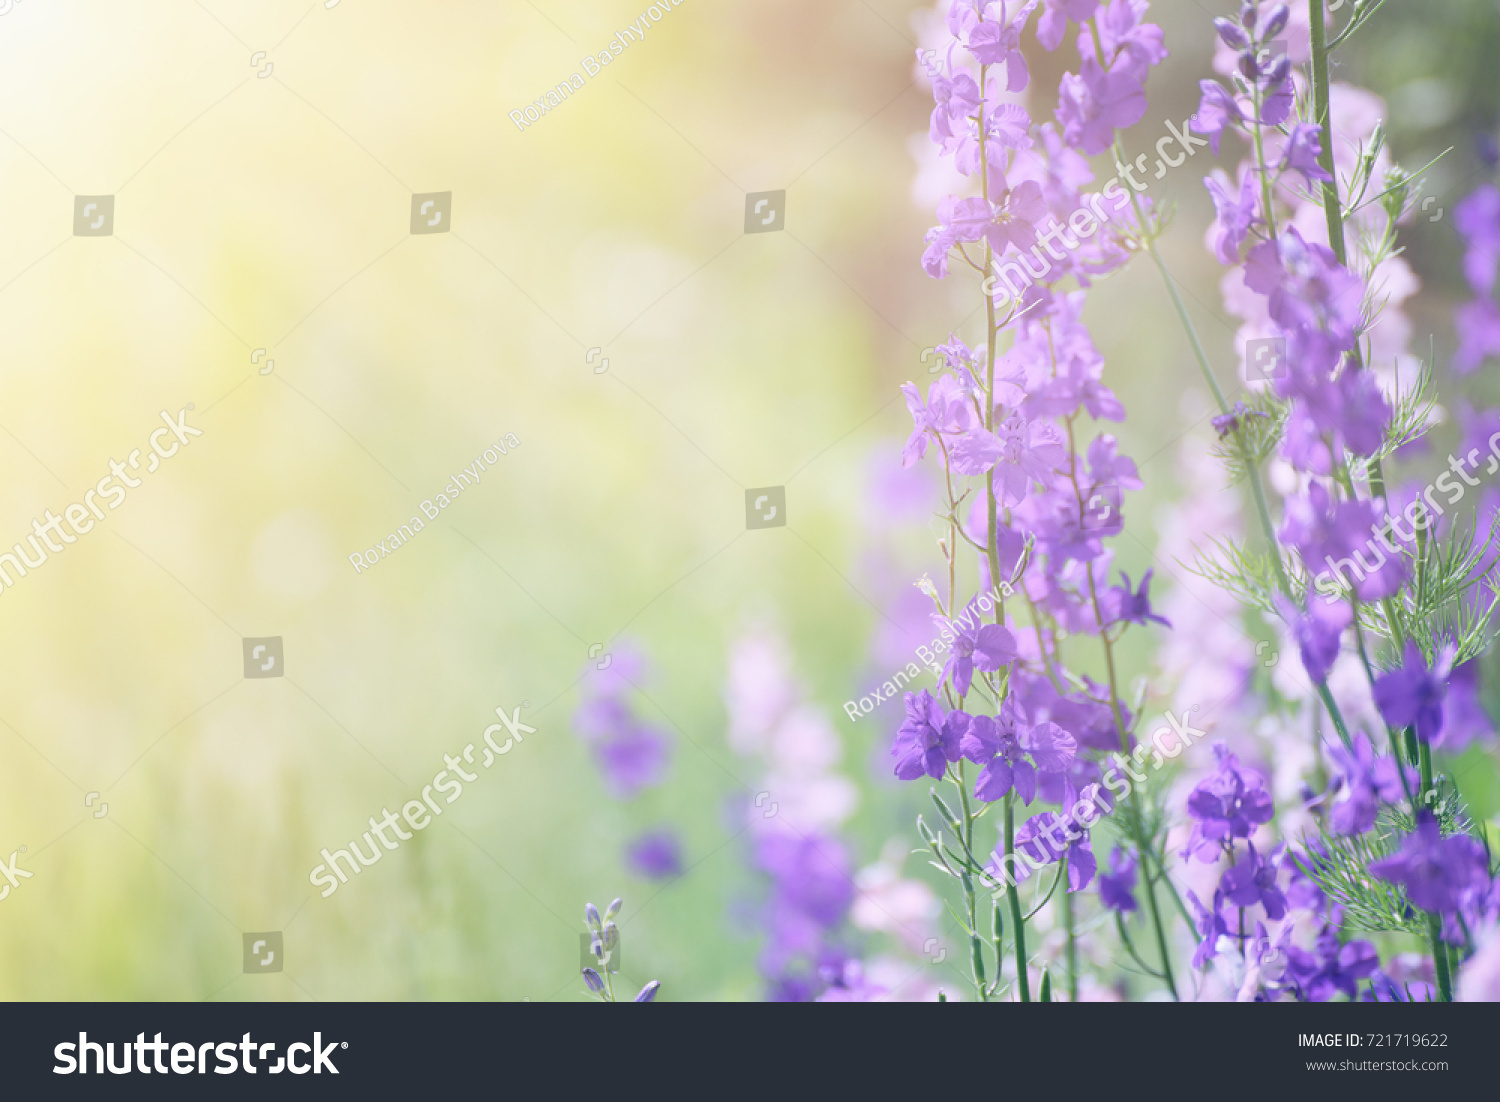 Lavender fields background blue picturesque violet www lavender field floral summer or spring background field with lavender flowers and beautiful bokeh lights ez izmirmasajfo